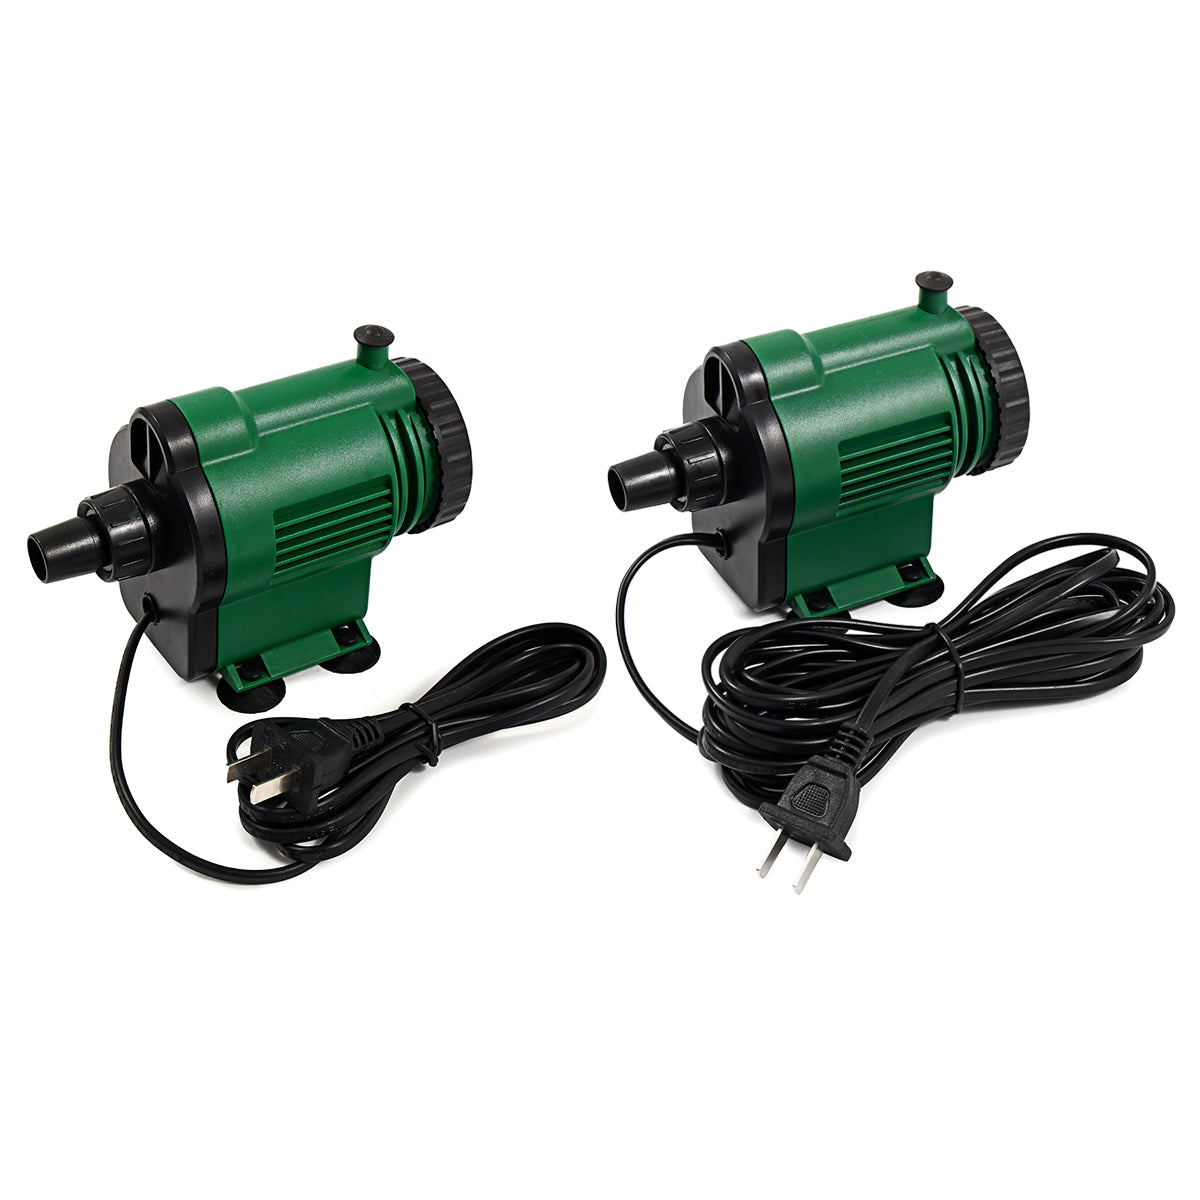 22W 220-240V Electronic Water Changer Gravel Fish Tank Manure Sand Aquarium Cleaner electrical connector